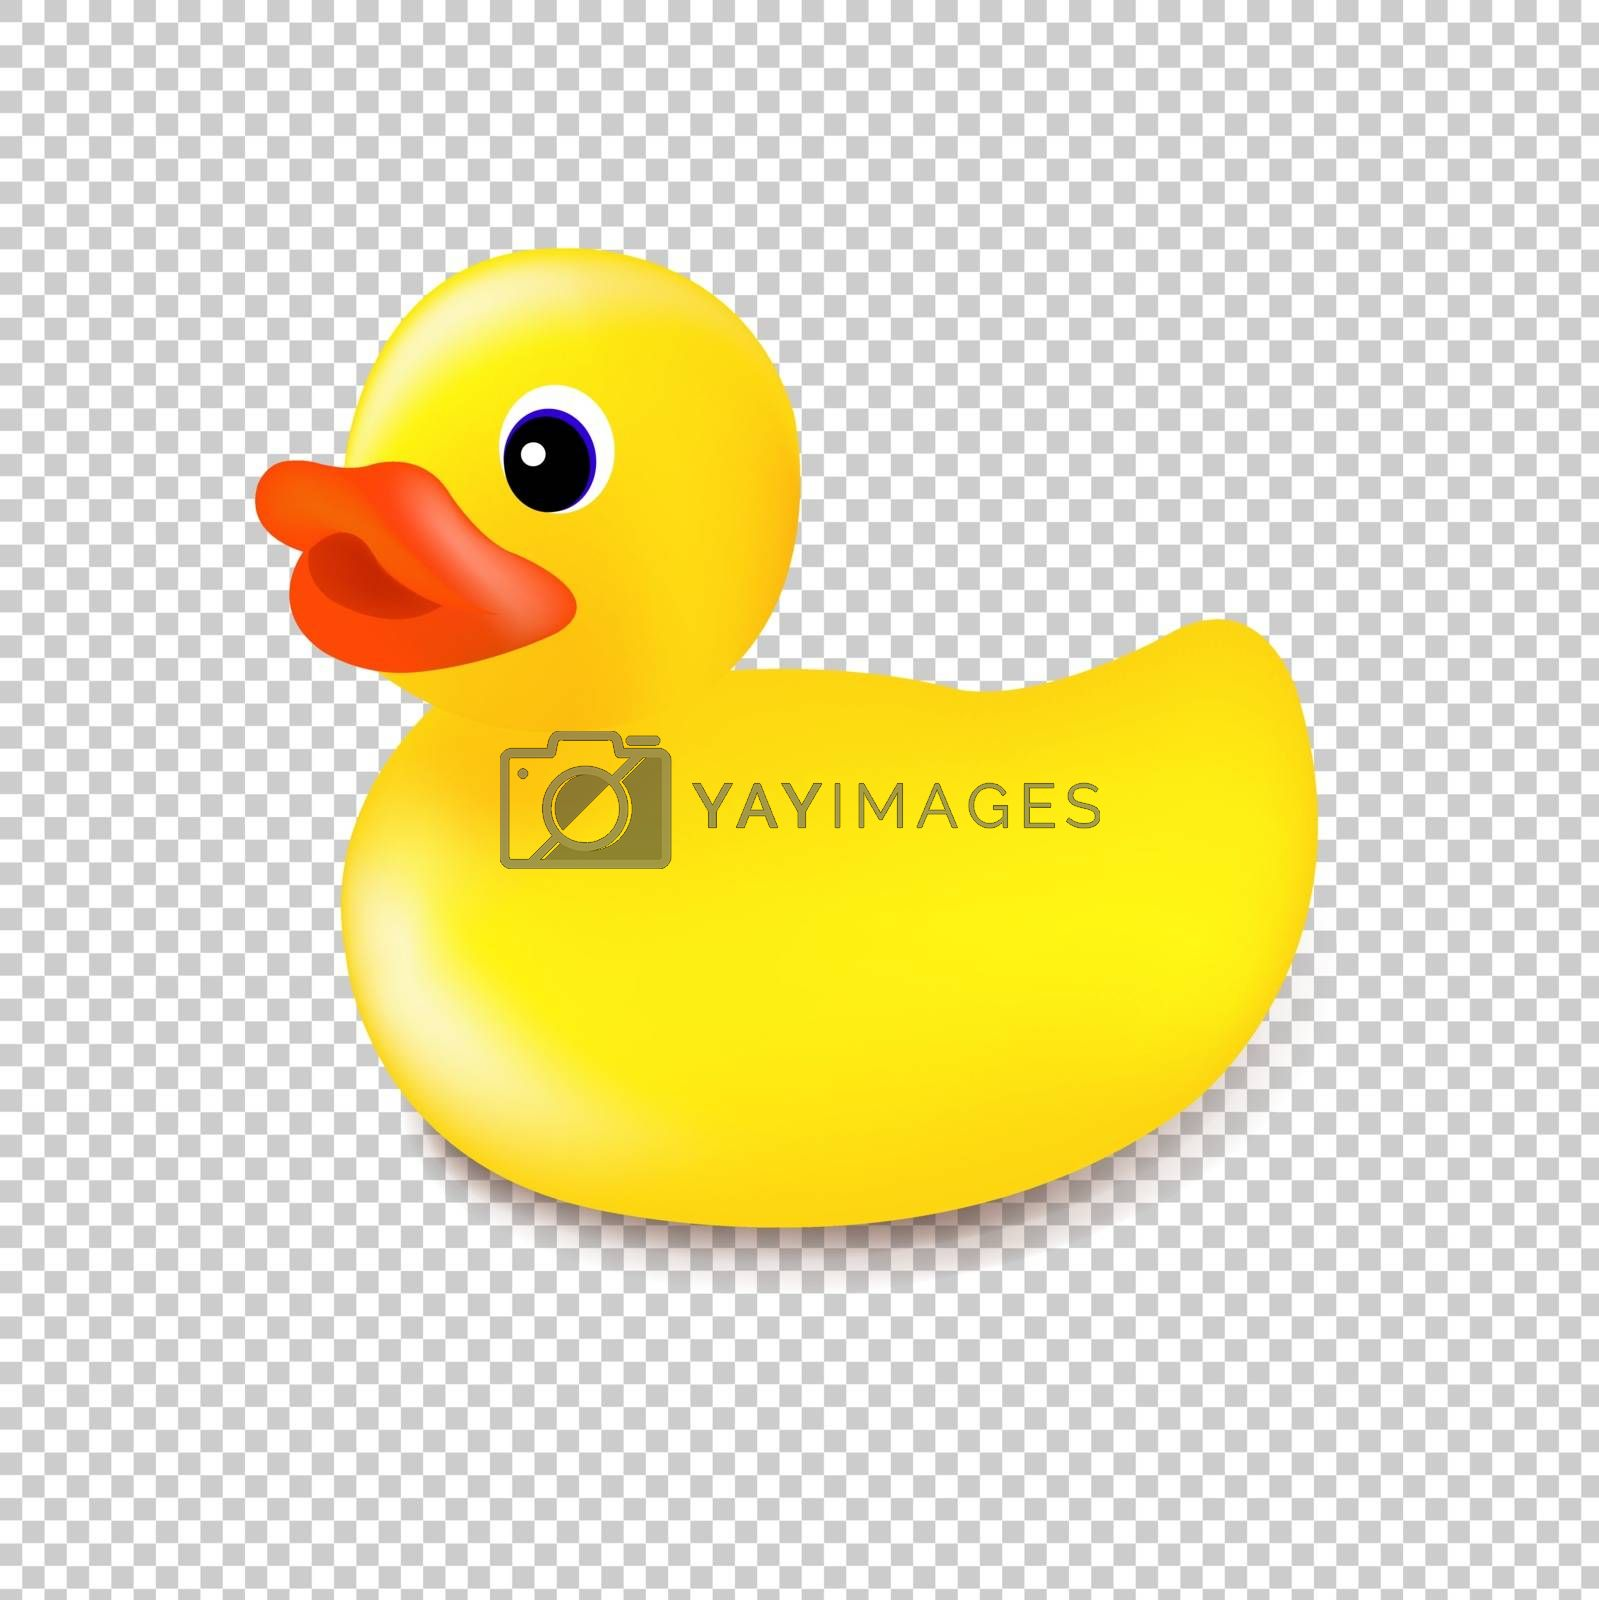 Rubber Duck Isolated Transparent Background With Gradient Mesh, Vector Illustration